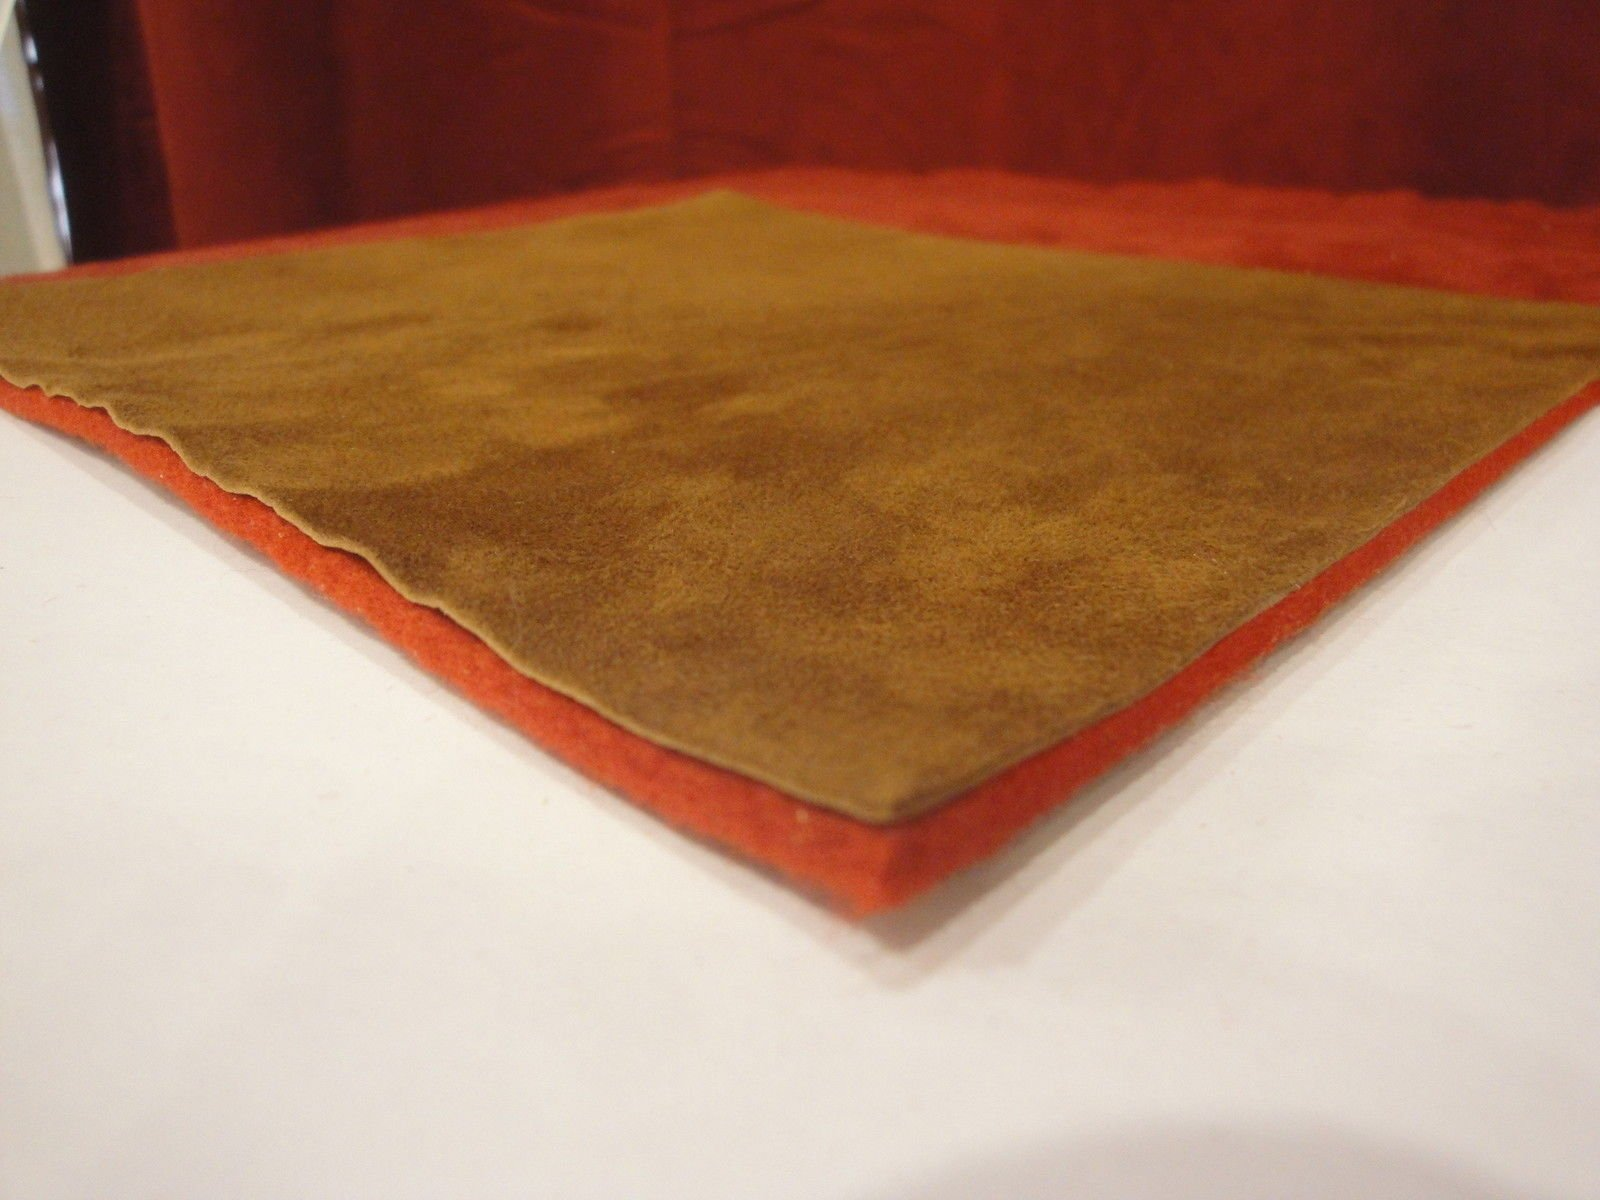 New Accordion Part - Combination Pad Material 6x3  Red Felt (5mm) and Brown Suede (1mm)